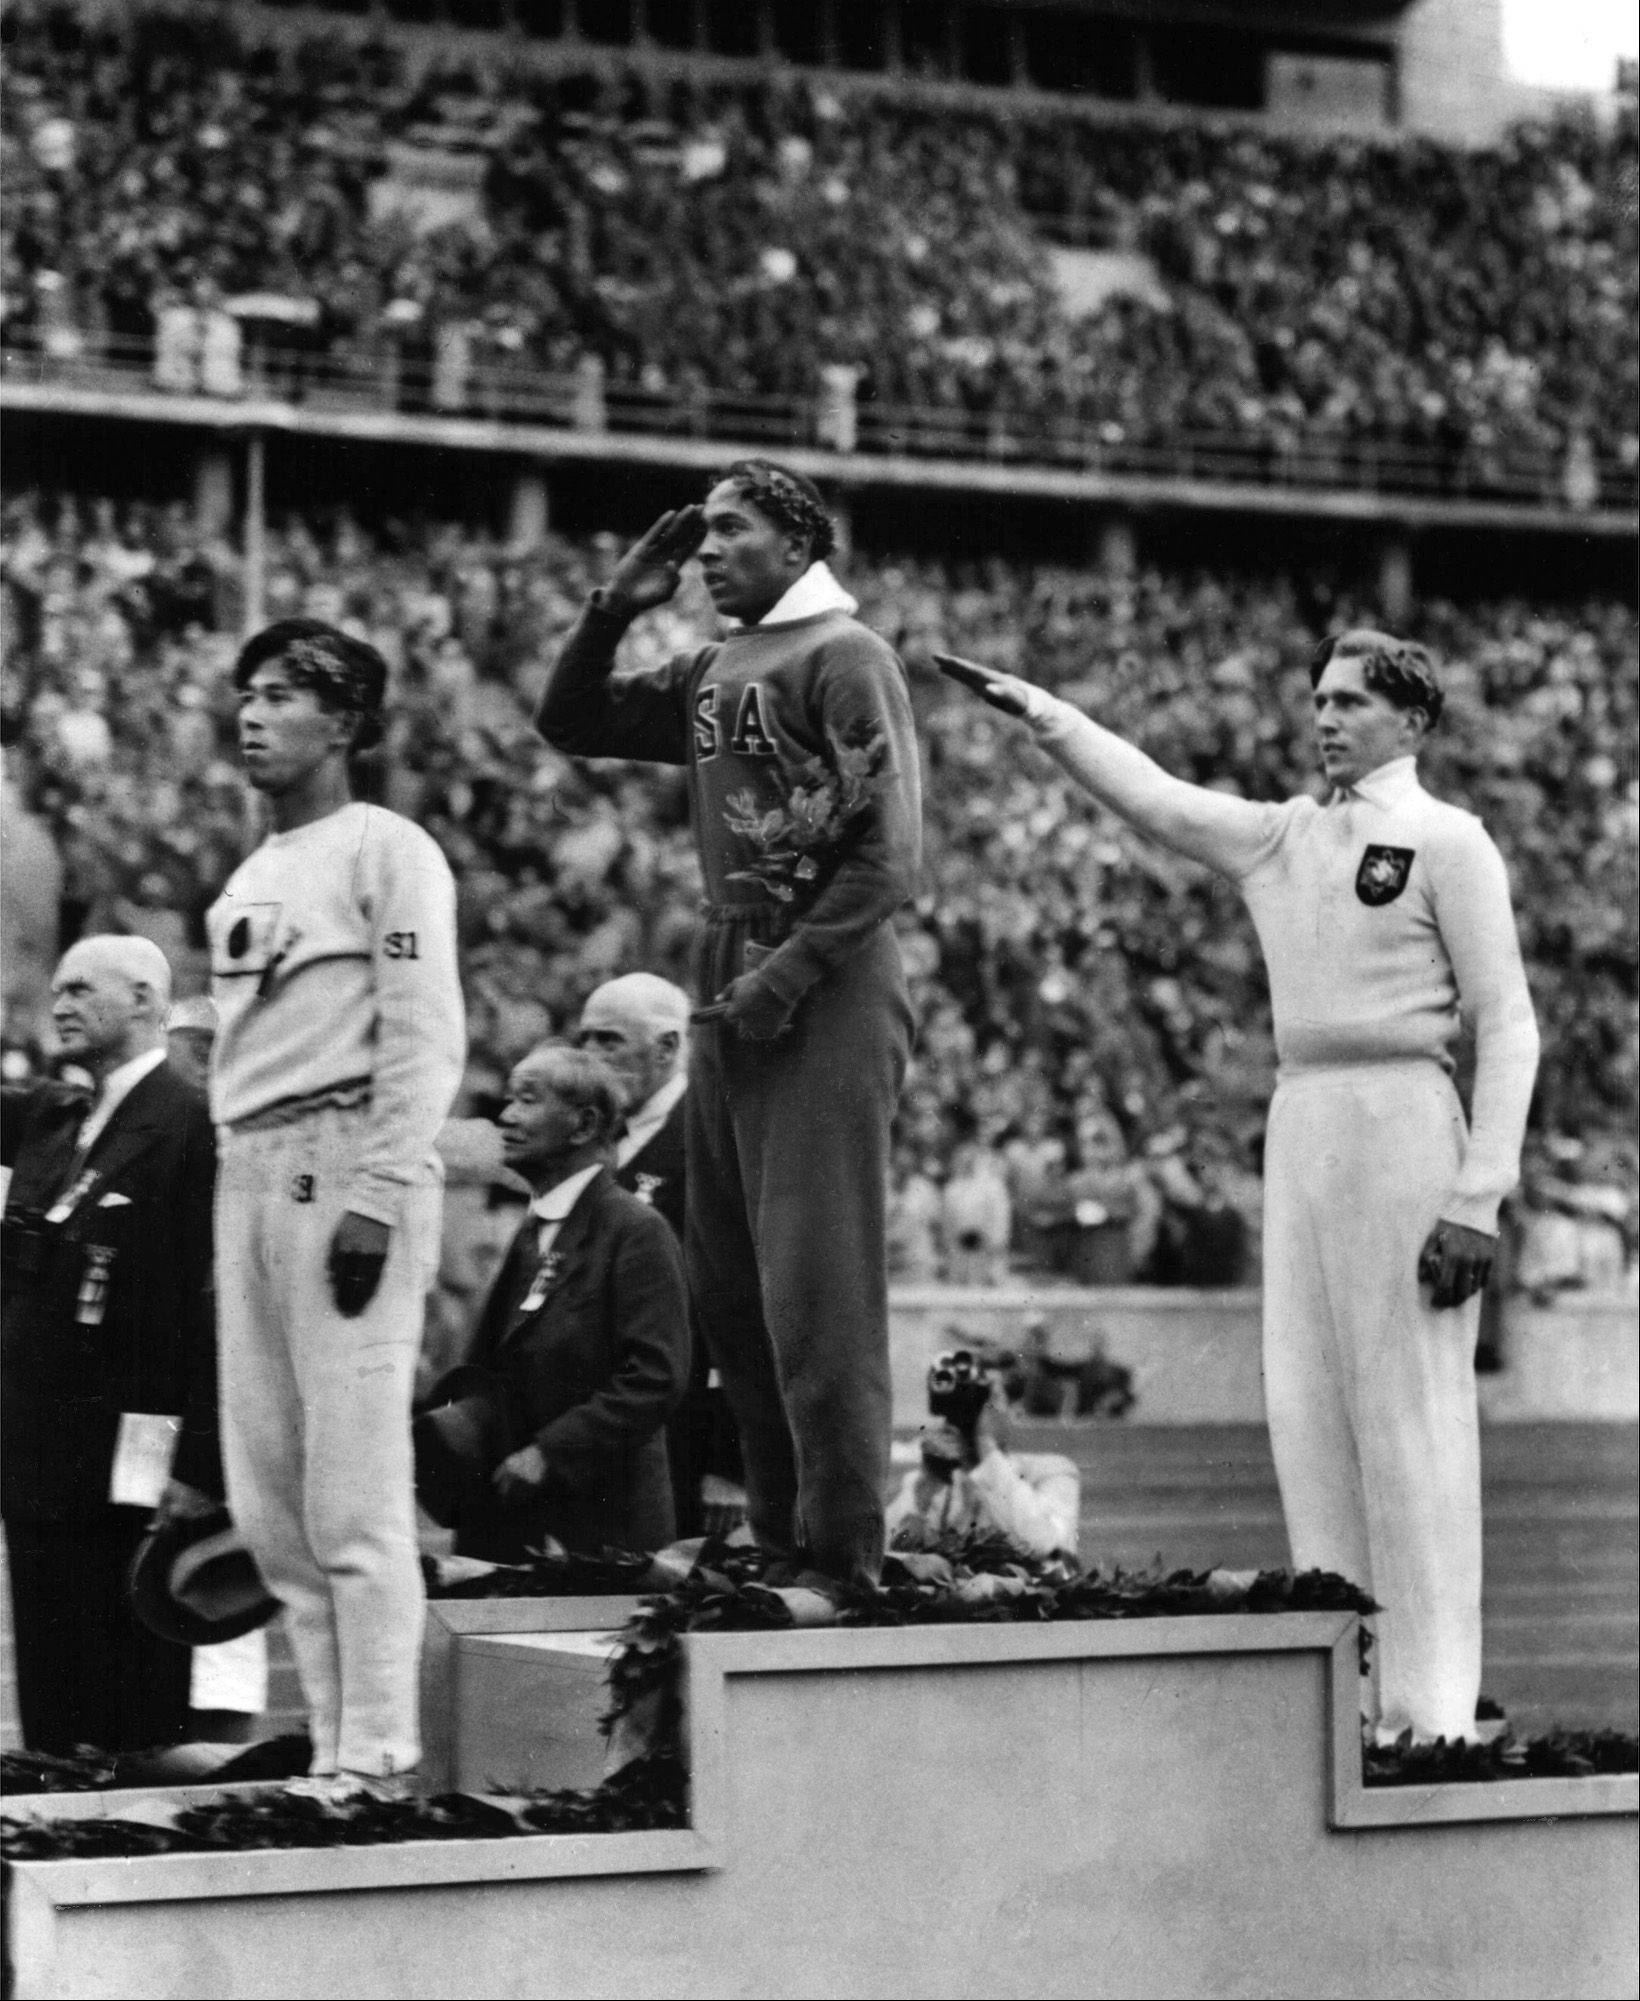 America�s Jesse Owens, center, salutes during the presentation of his gold medal for the long jump on August 11, 1936, after defeating Nazi Germany�s Lutz Long, right, during the 1936 Summer Olympics in Berlin. Naoto Tajima of Japan, left, placed third. Owens triumphed in the track and field competition by winning four gold medals in the 100-meter and 200-meter dashes, long jump and 400-meter relay. He was the first athlete to win four gold medals at a single Olympic Games.